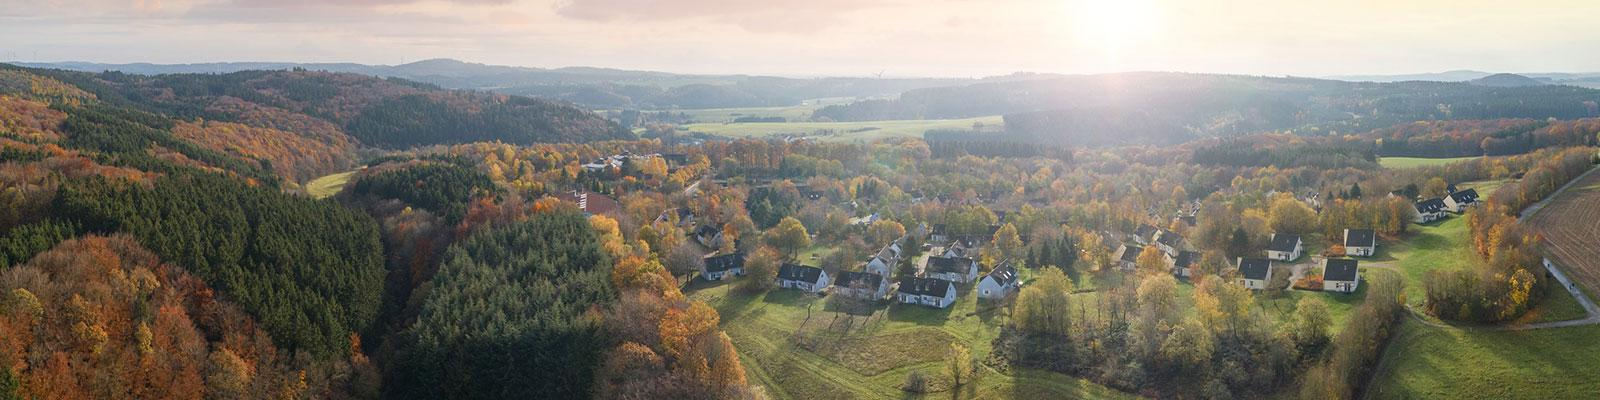 Holiday park in Vulkaneifel, Germany